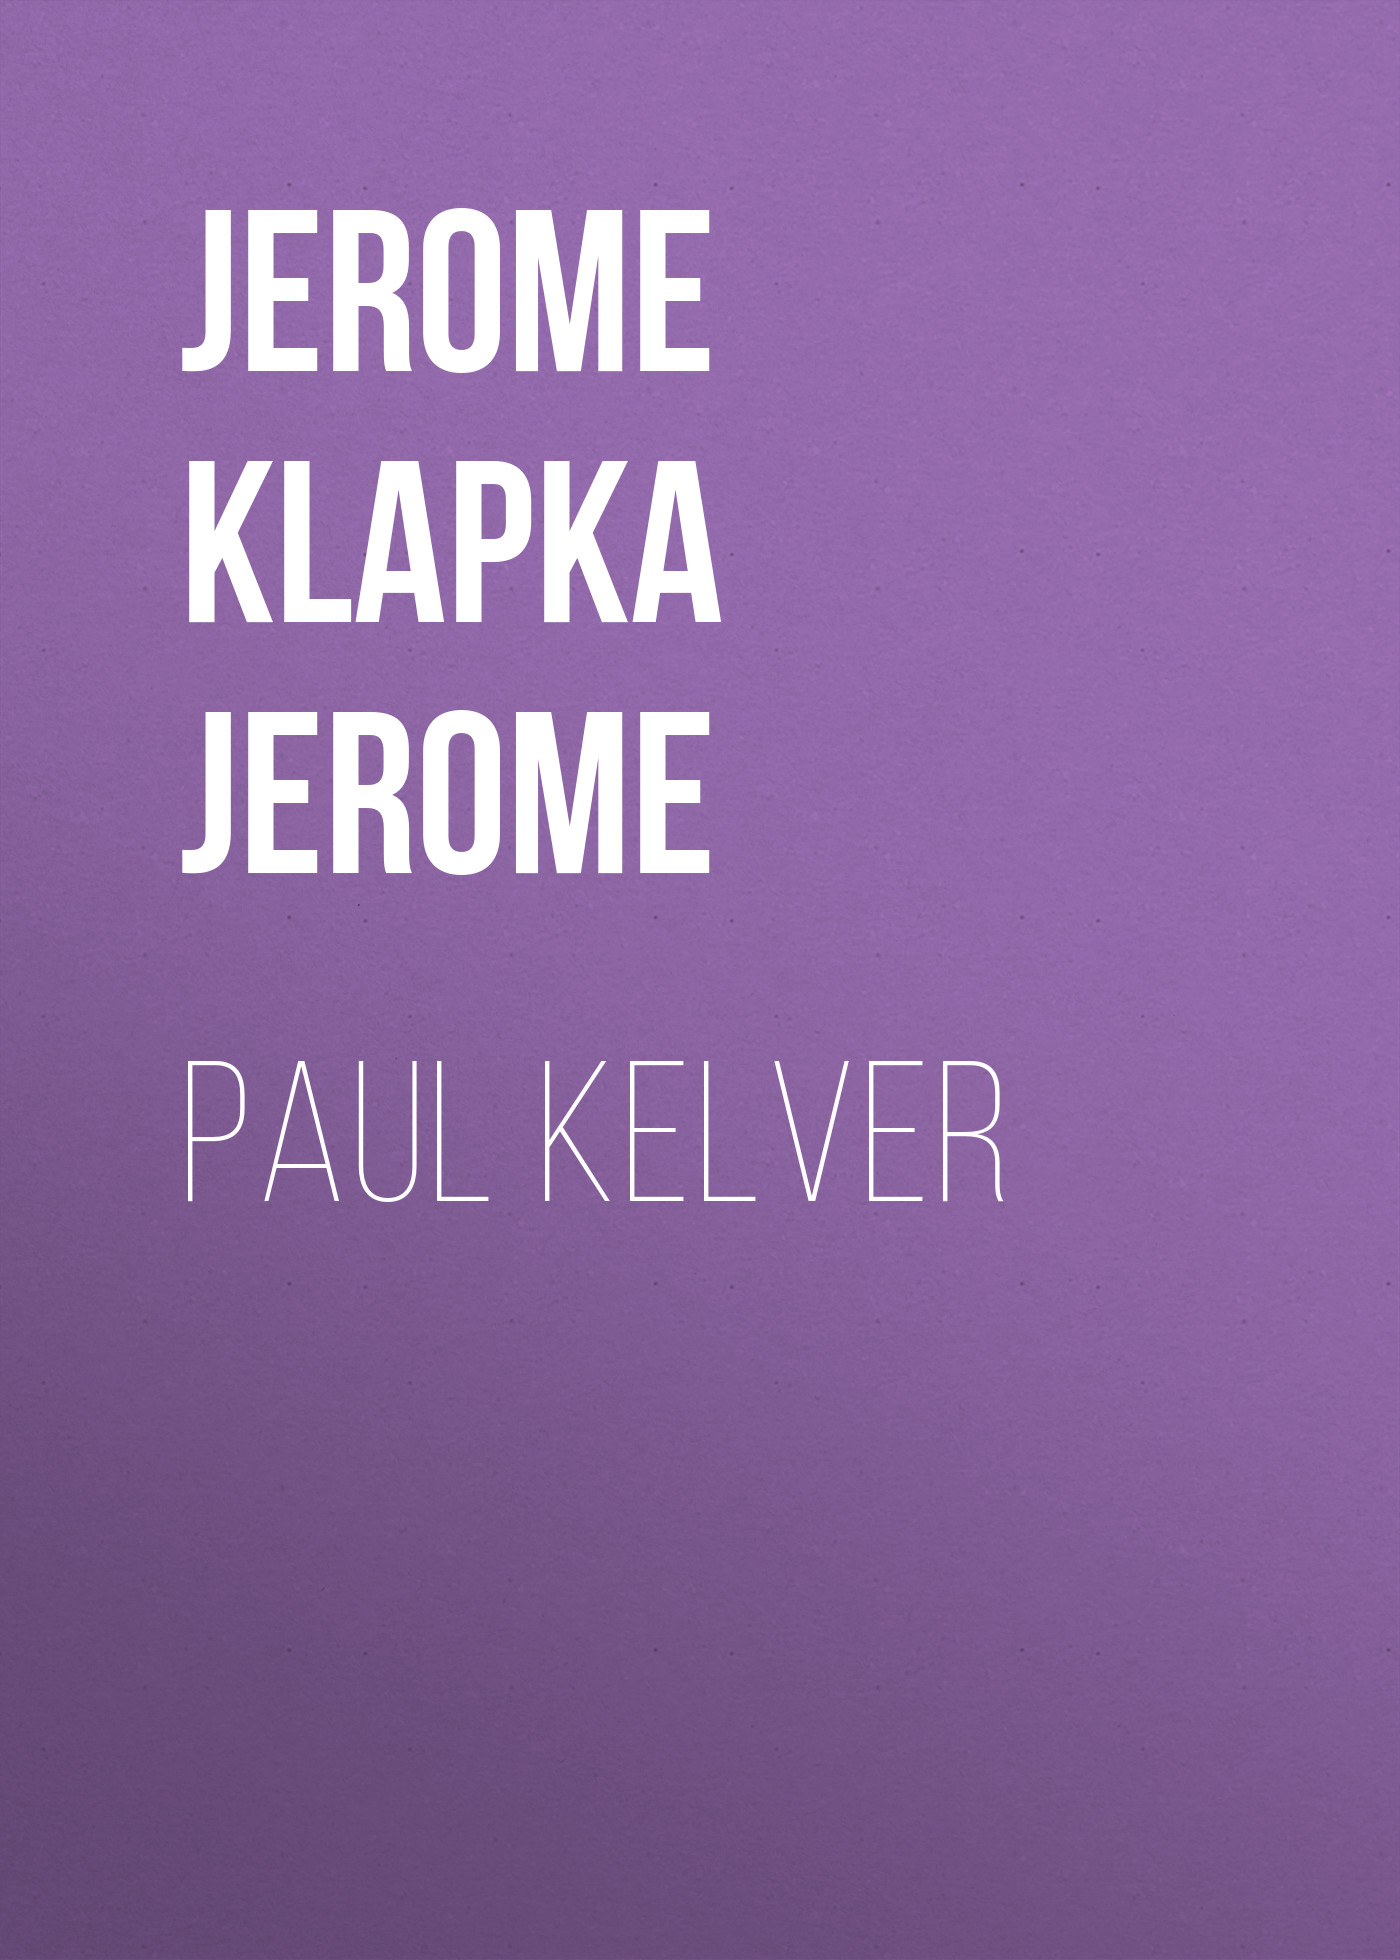 Джером Клапка Джером Paul Kelver jerome j paul kelver